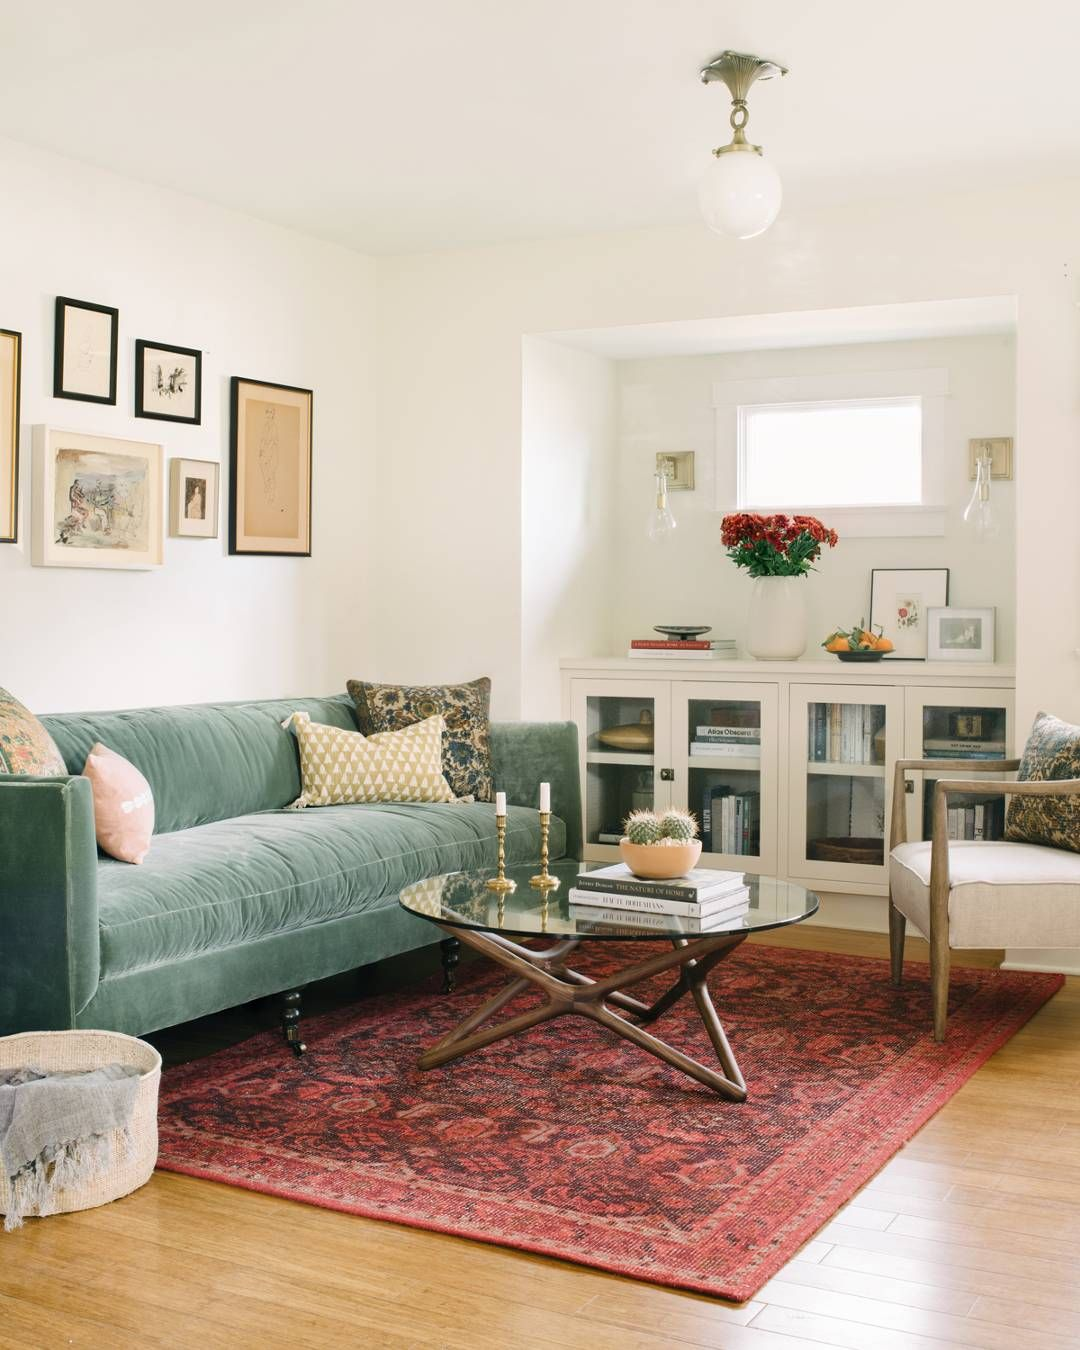 Step Inside an Actress's Cozy and Eclectic Living Room #livingroomideas